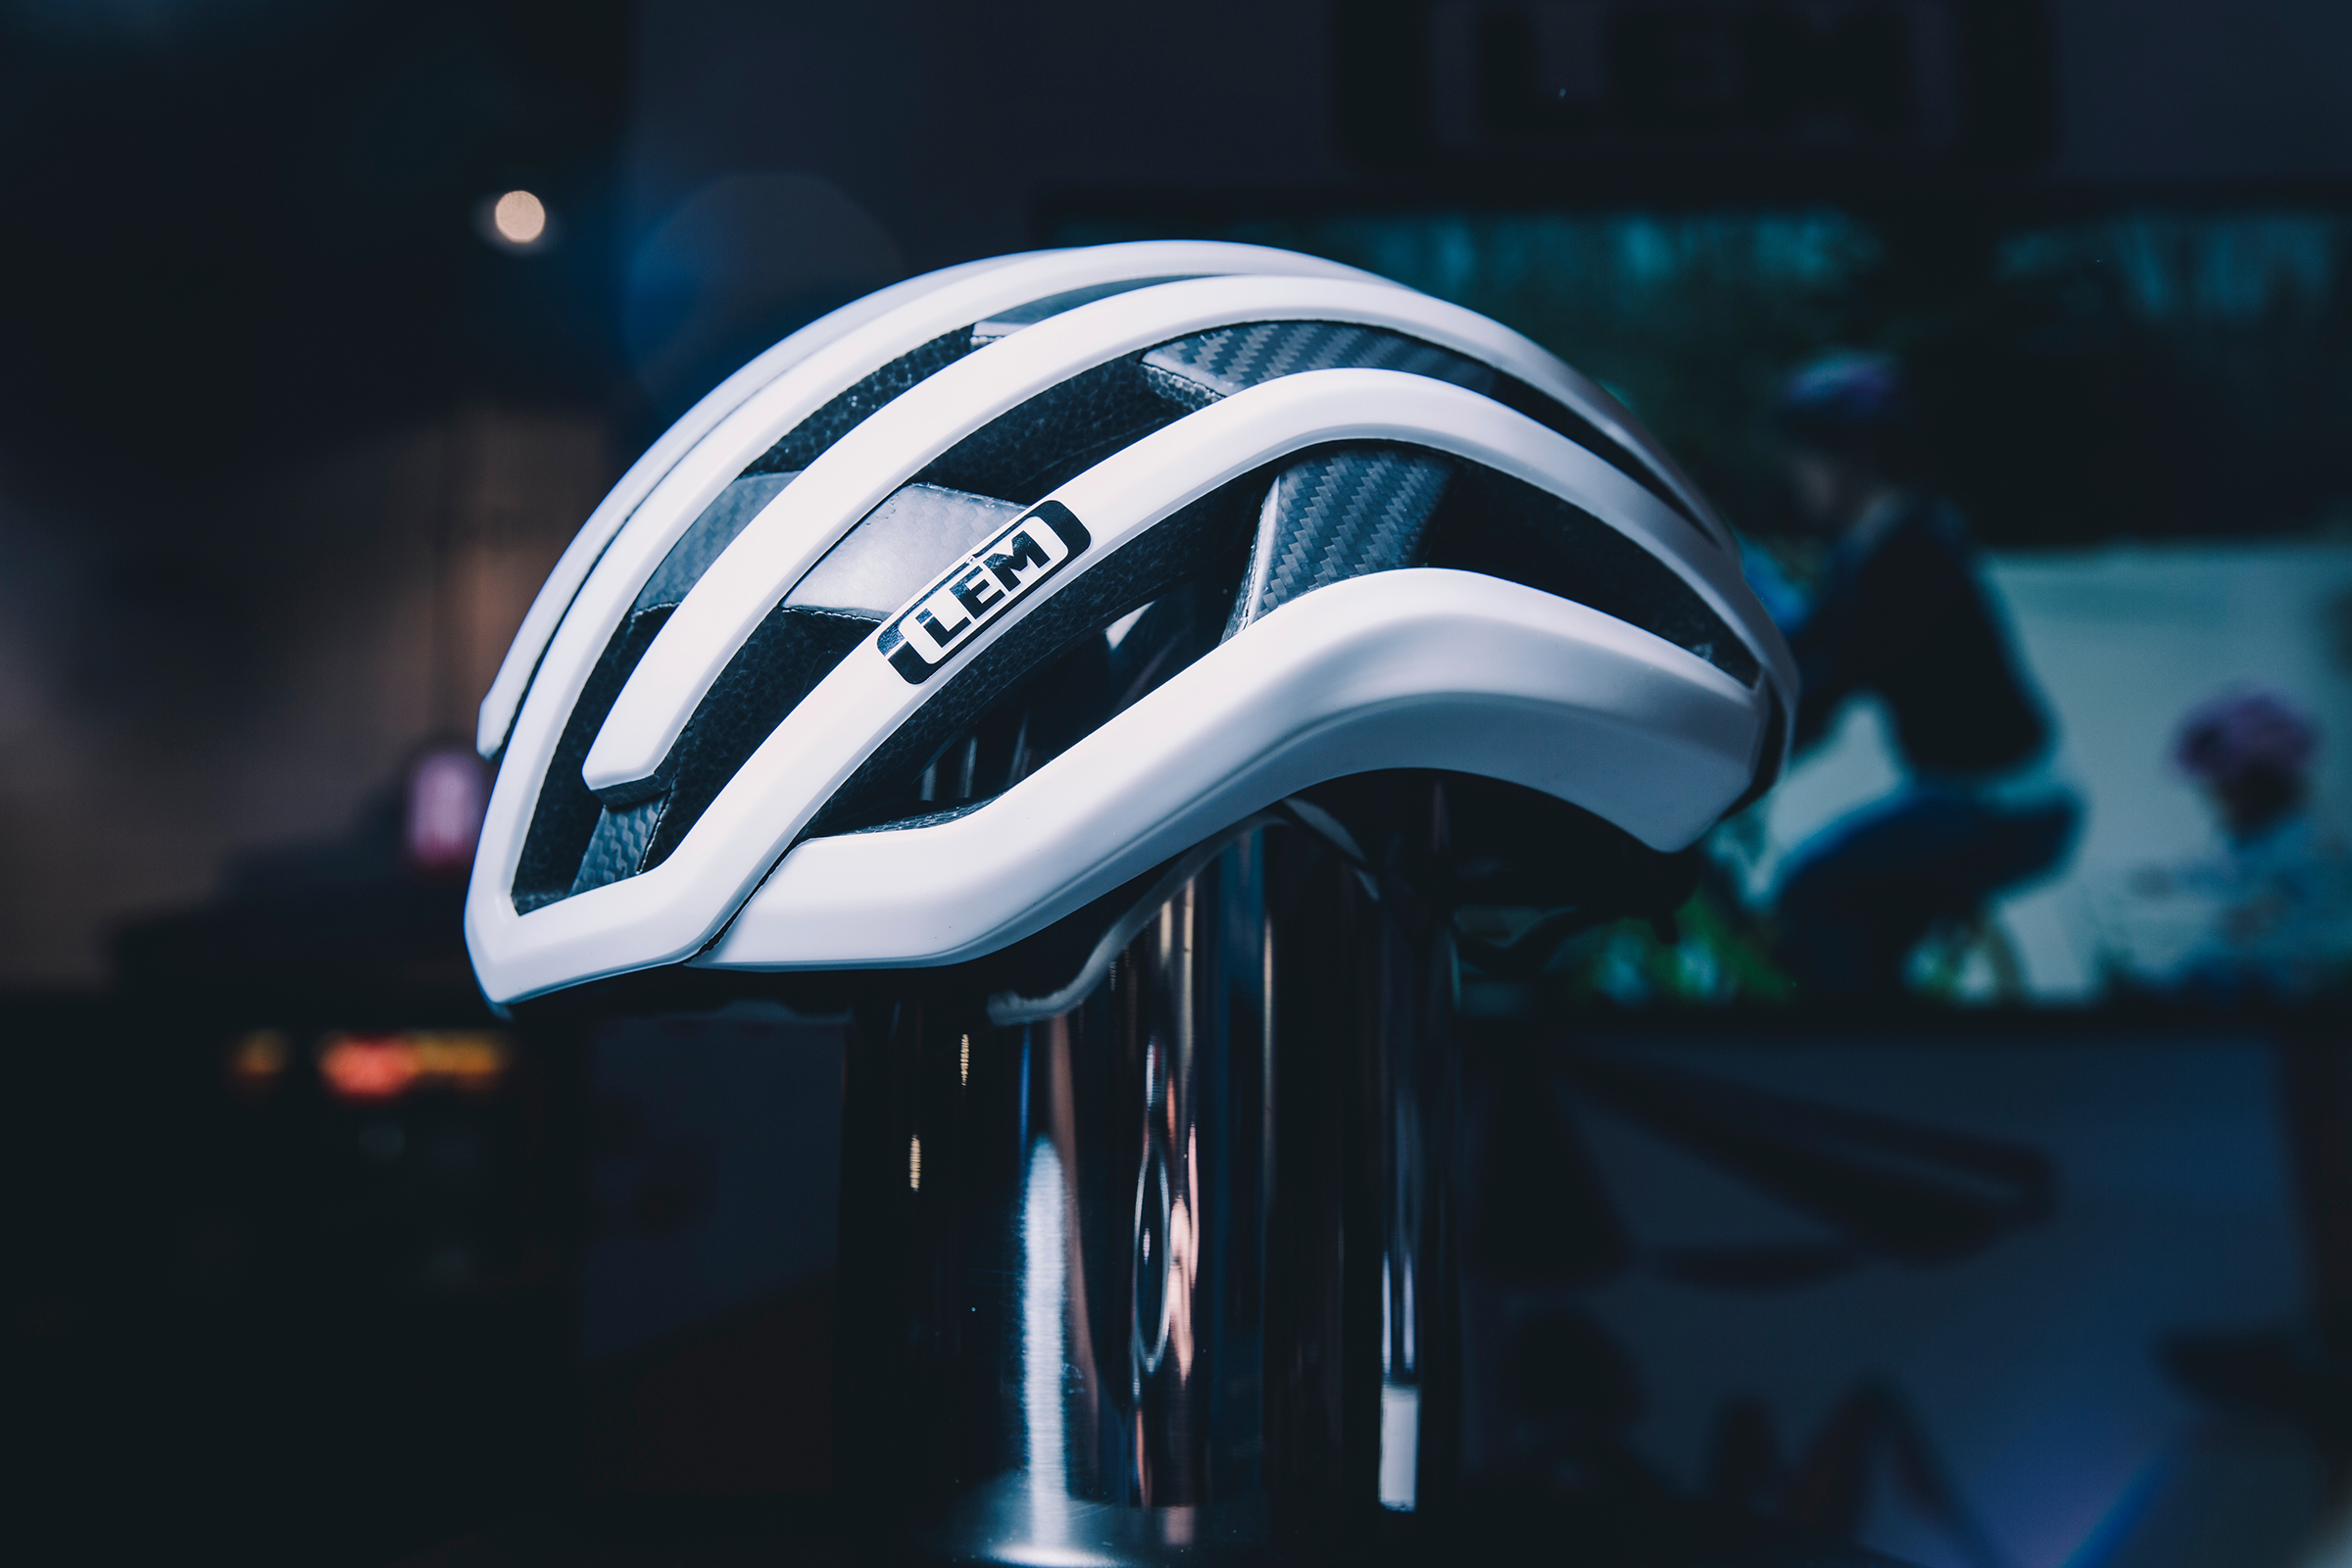 LEM MotiveAir helmet